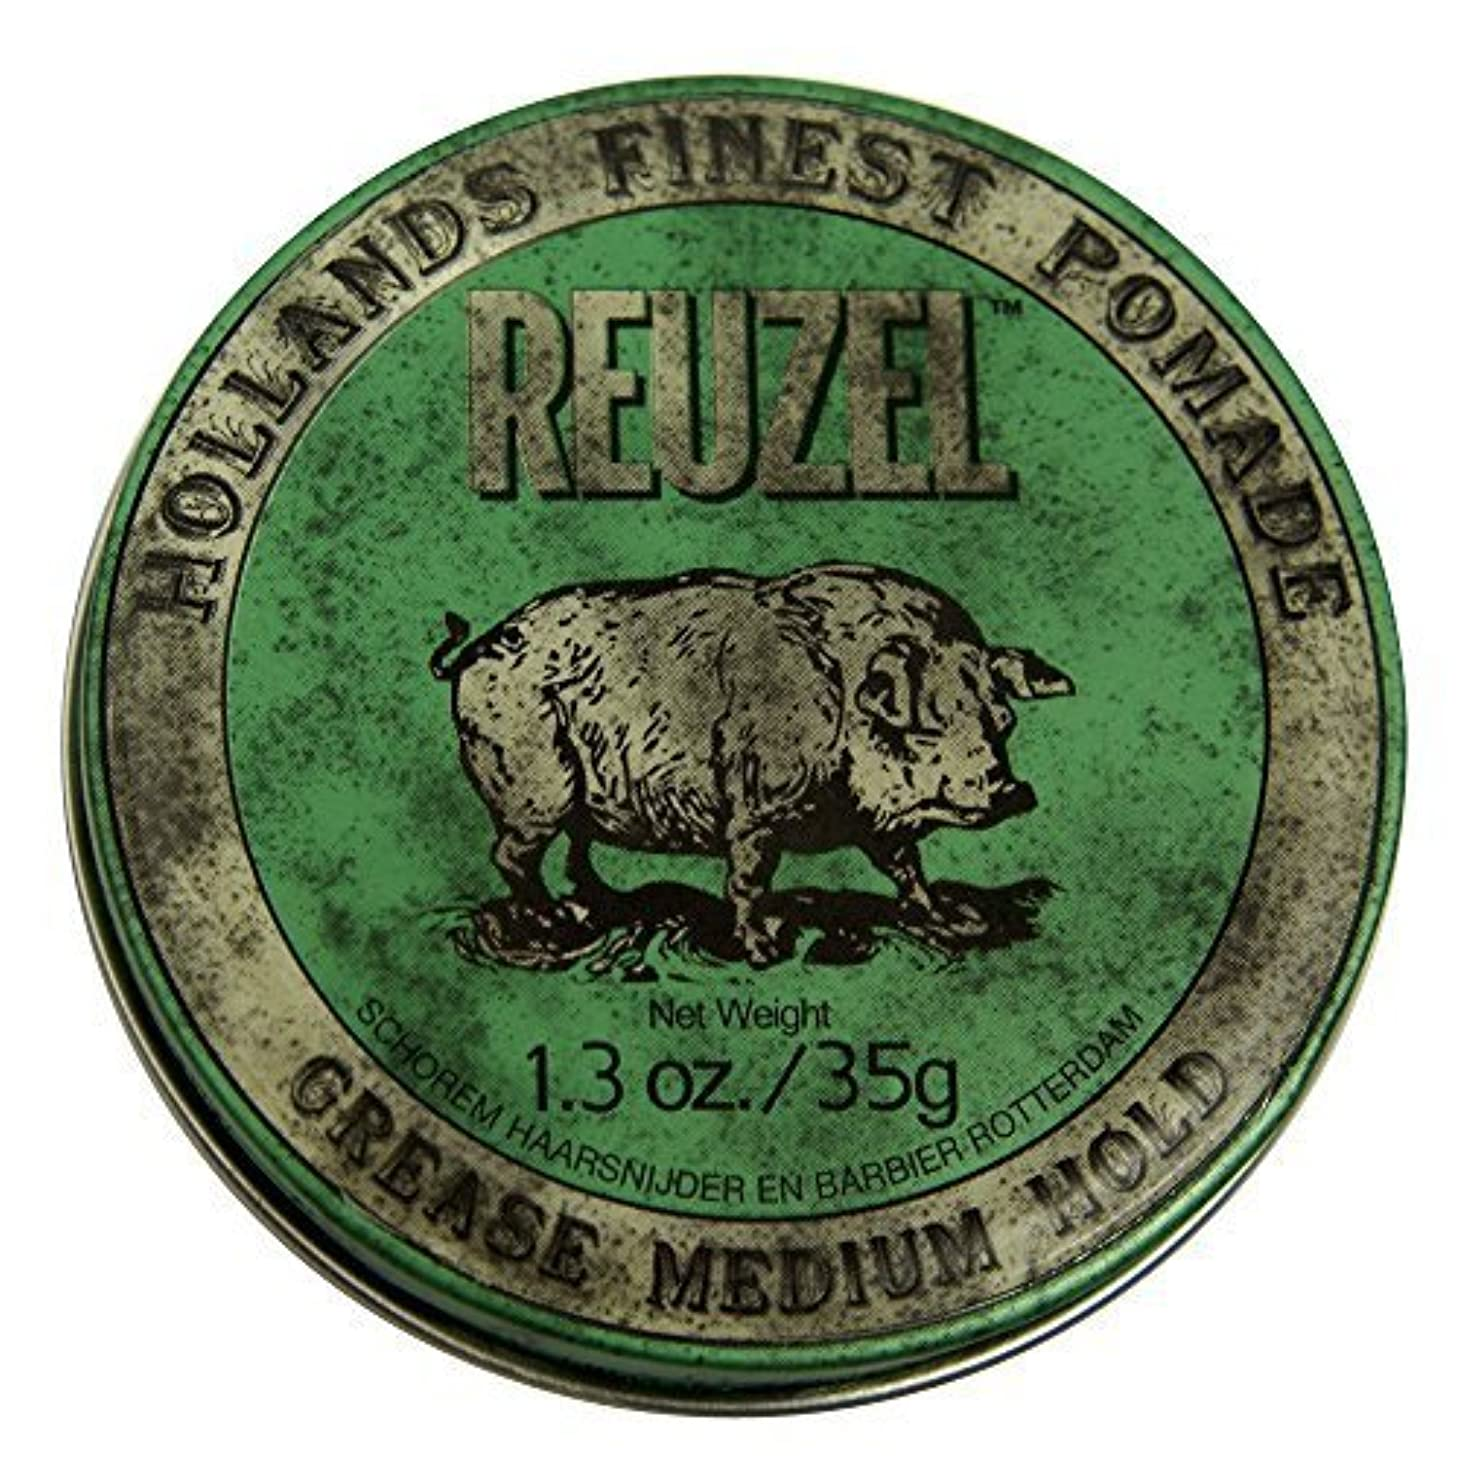 未就学顔料ジェットby Reuzel Reuzel Green Grease Medium Hold Hair Styling Pomade Piglet 1.3oz (35g) Wax/Gel [並行輸入品]